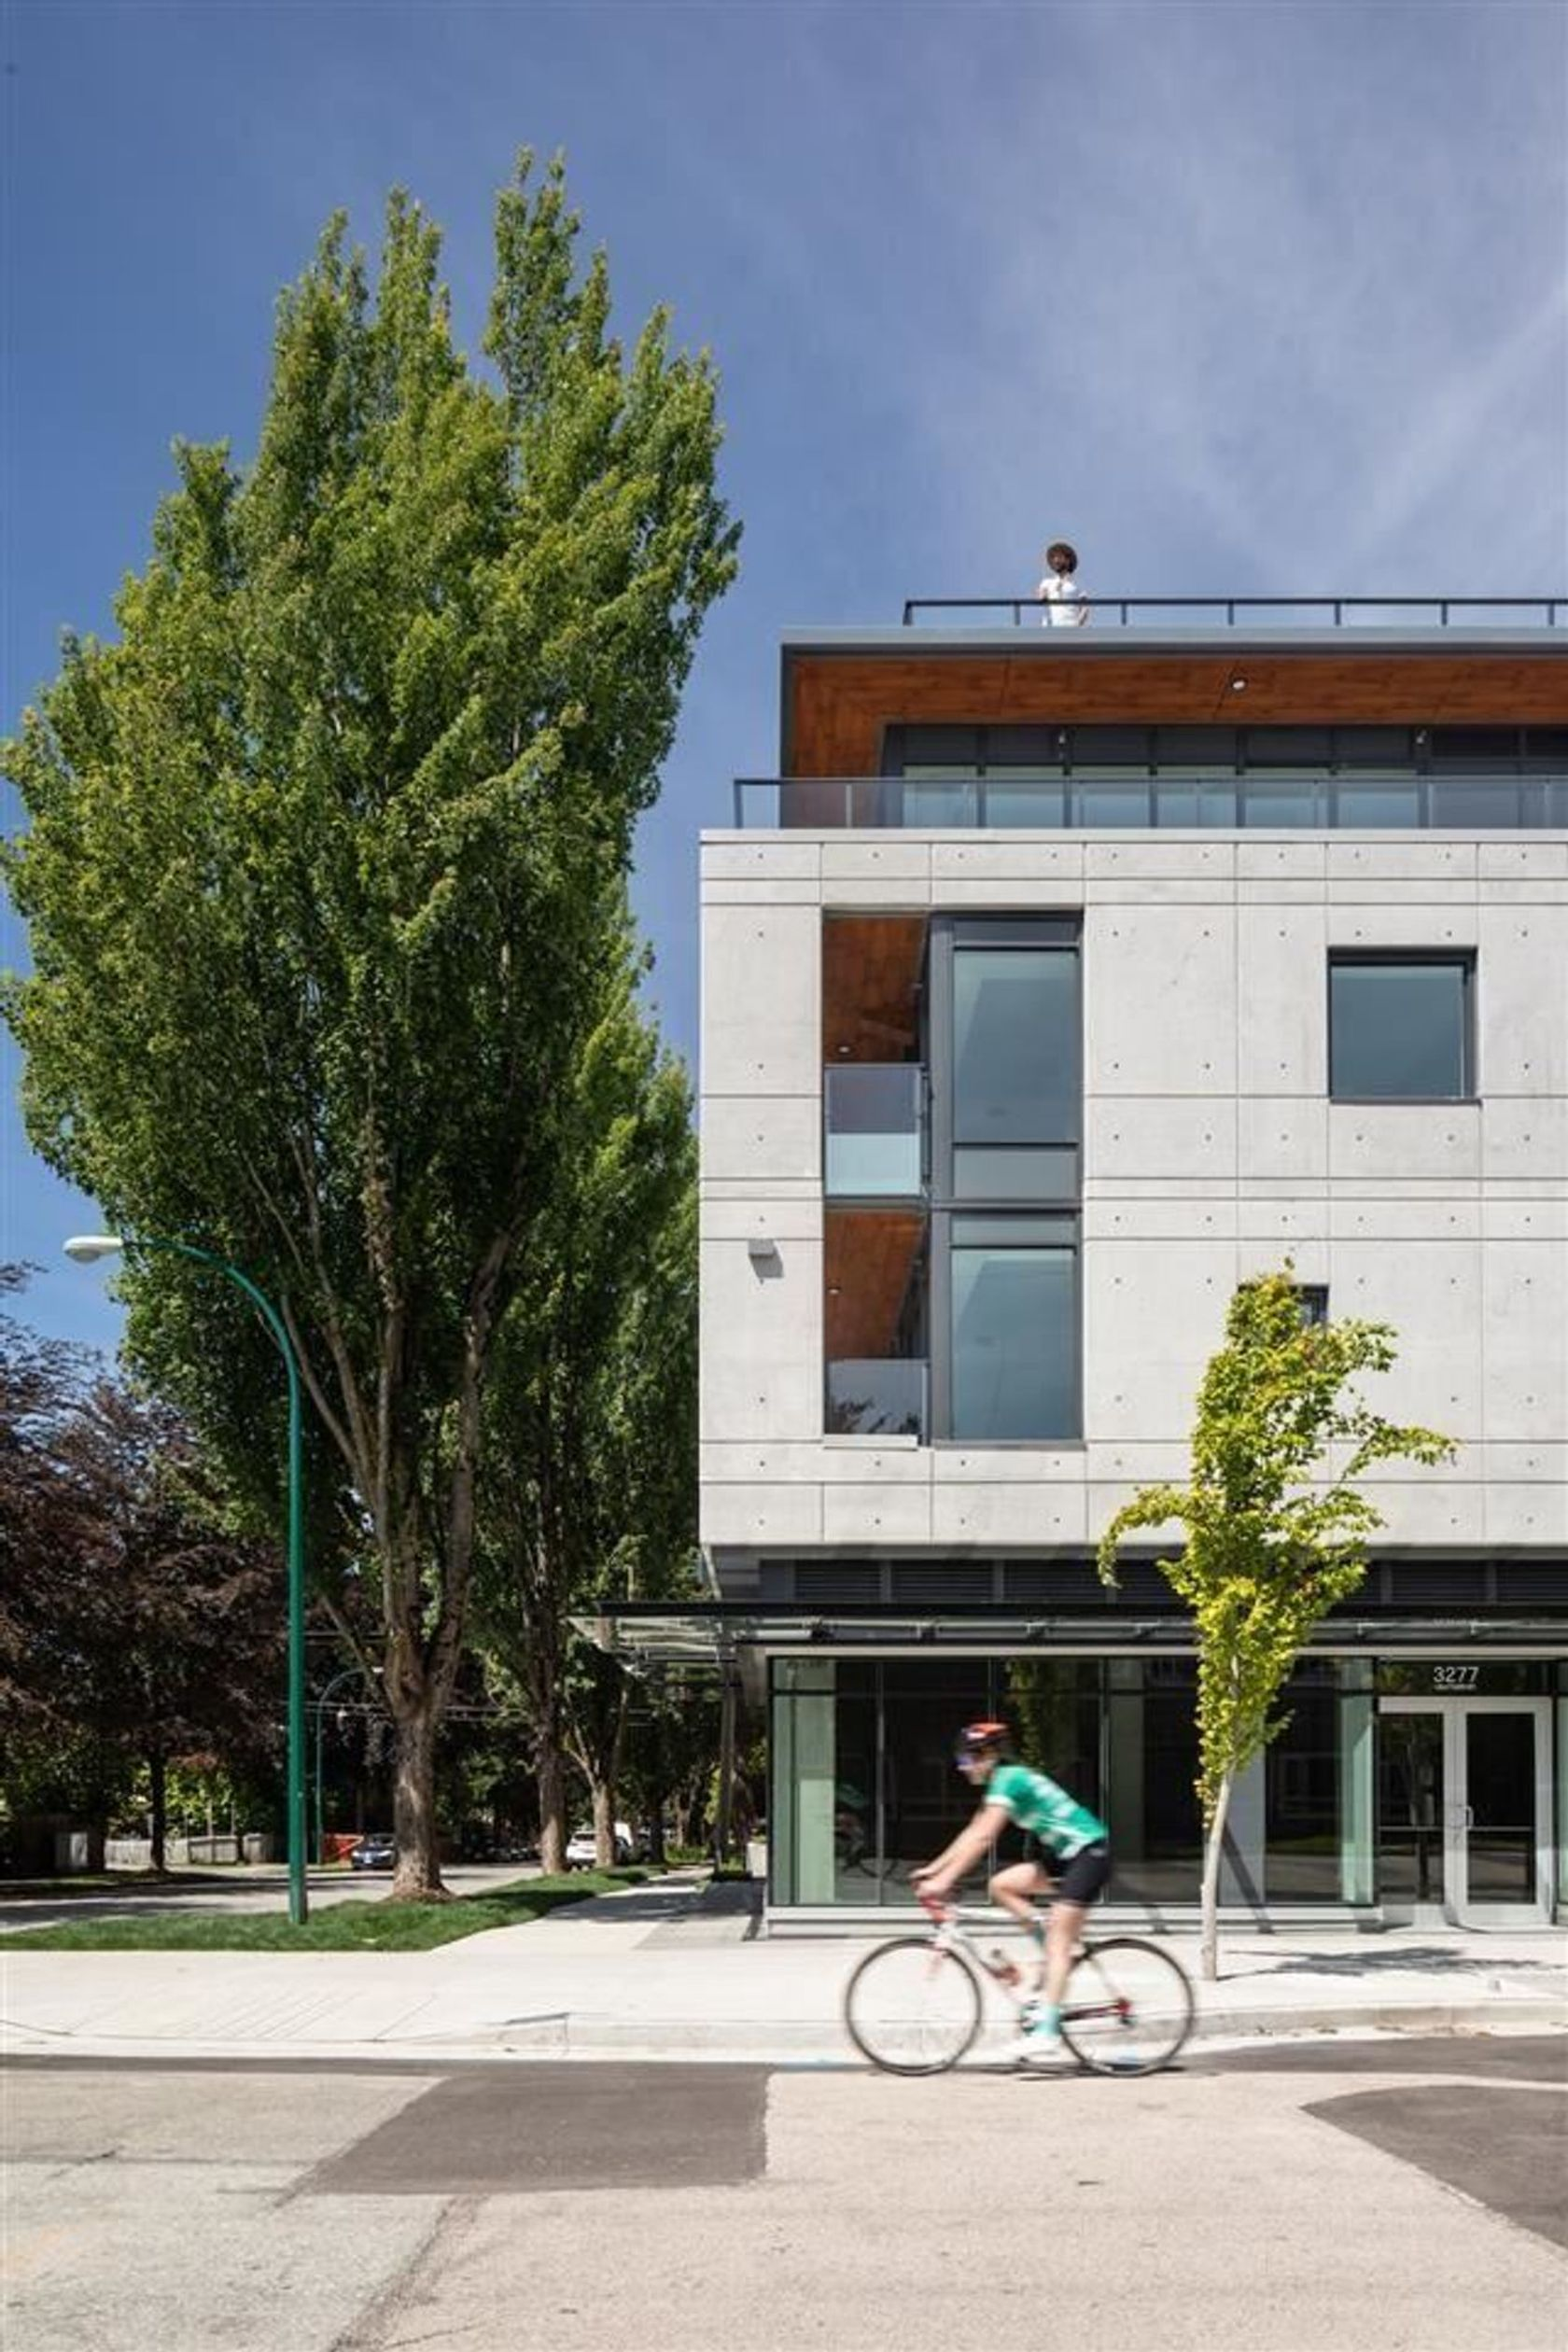 717-w-17th-avenue-cambie-vancouver-west-18 at 301 - 717 W 17th Avenue, Cambie, Vancouver West